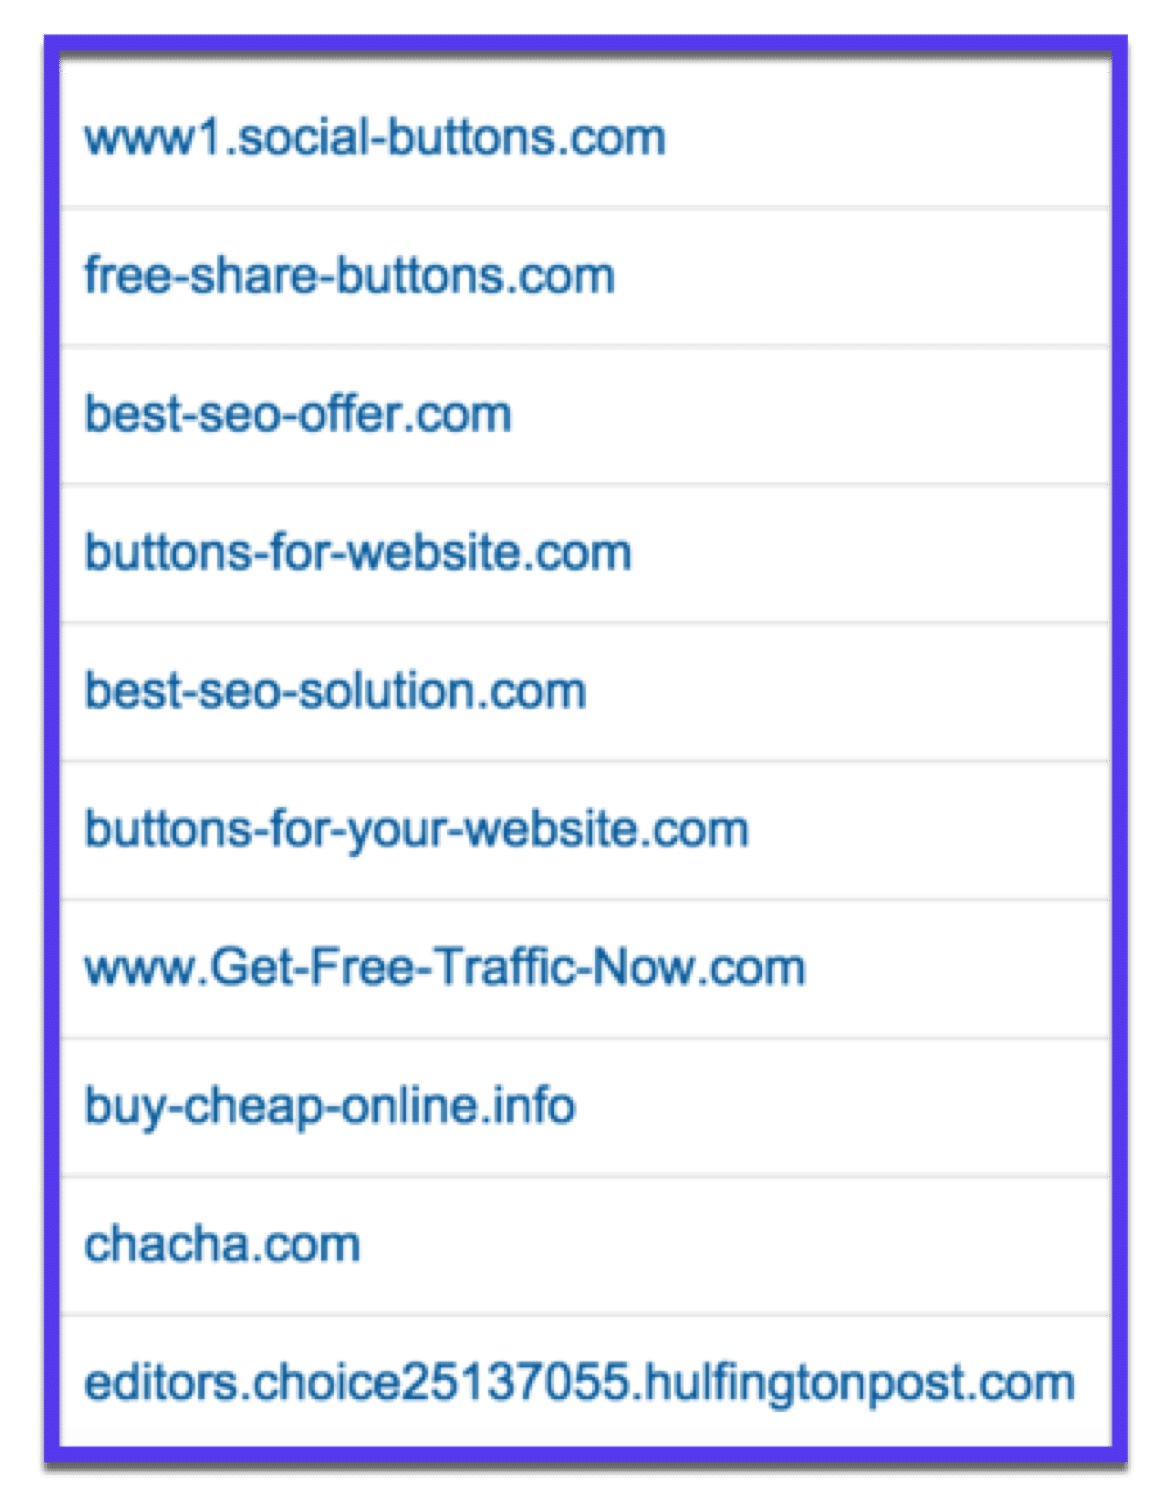 Even more spam sites in Google Analytics